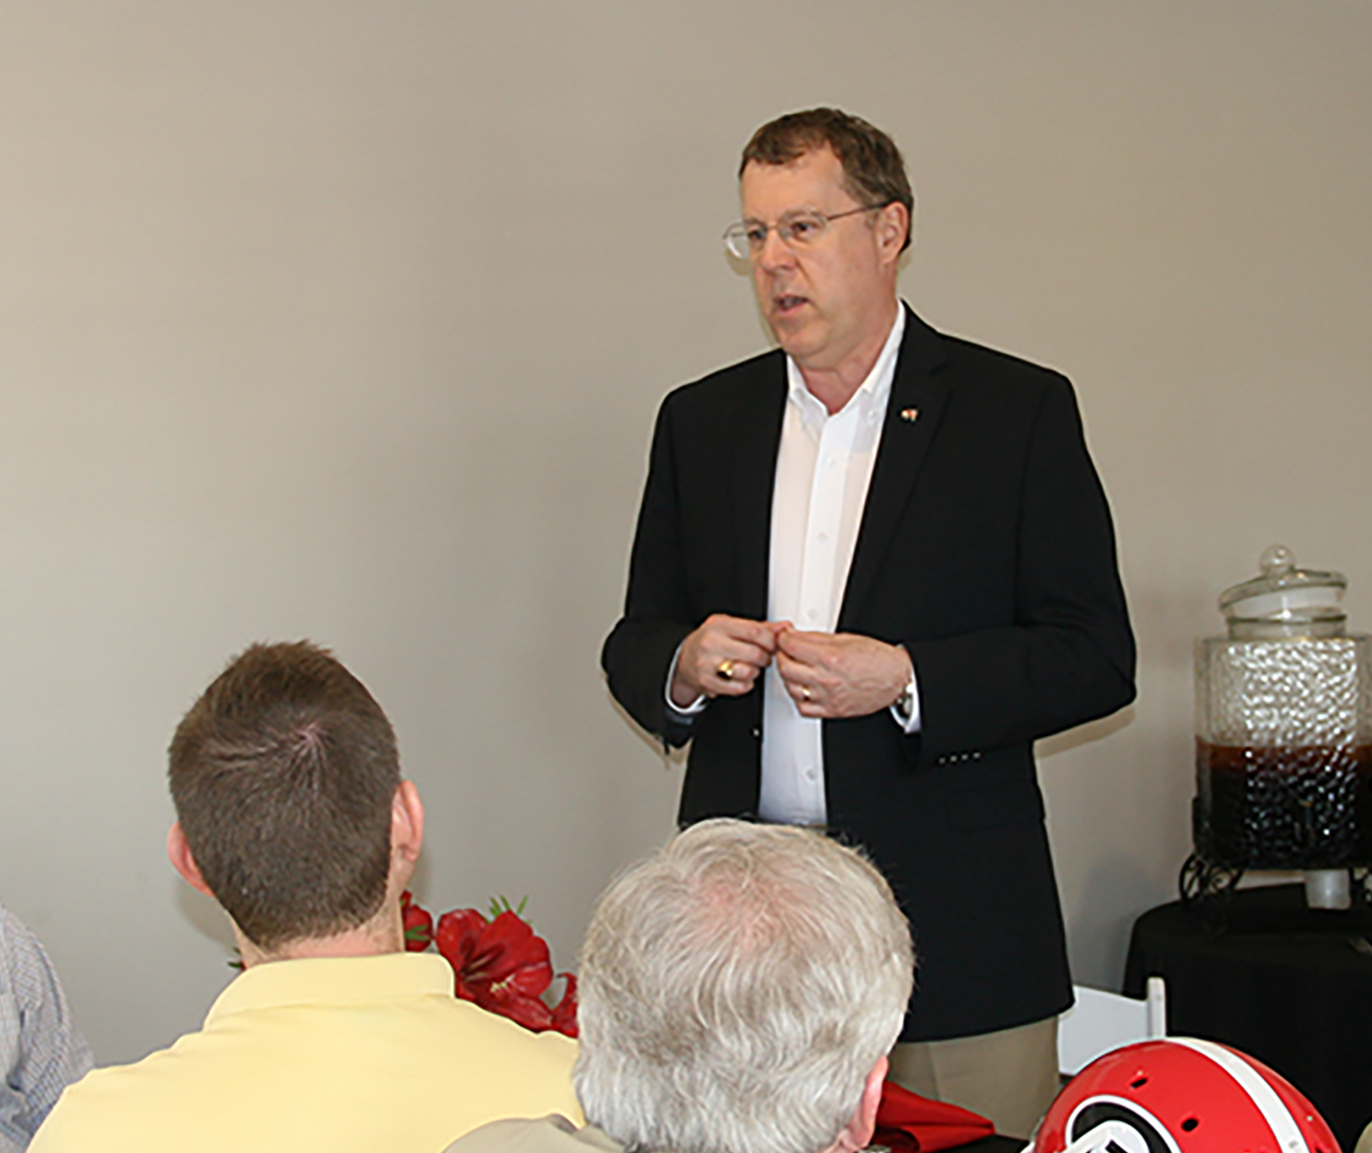 Dean Pardue speaks to industry leaders at Premium Peanut on Wednesday, April 20, 2016.